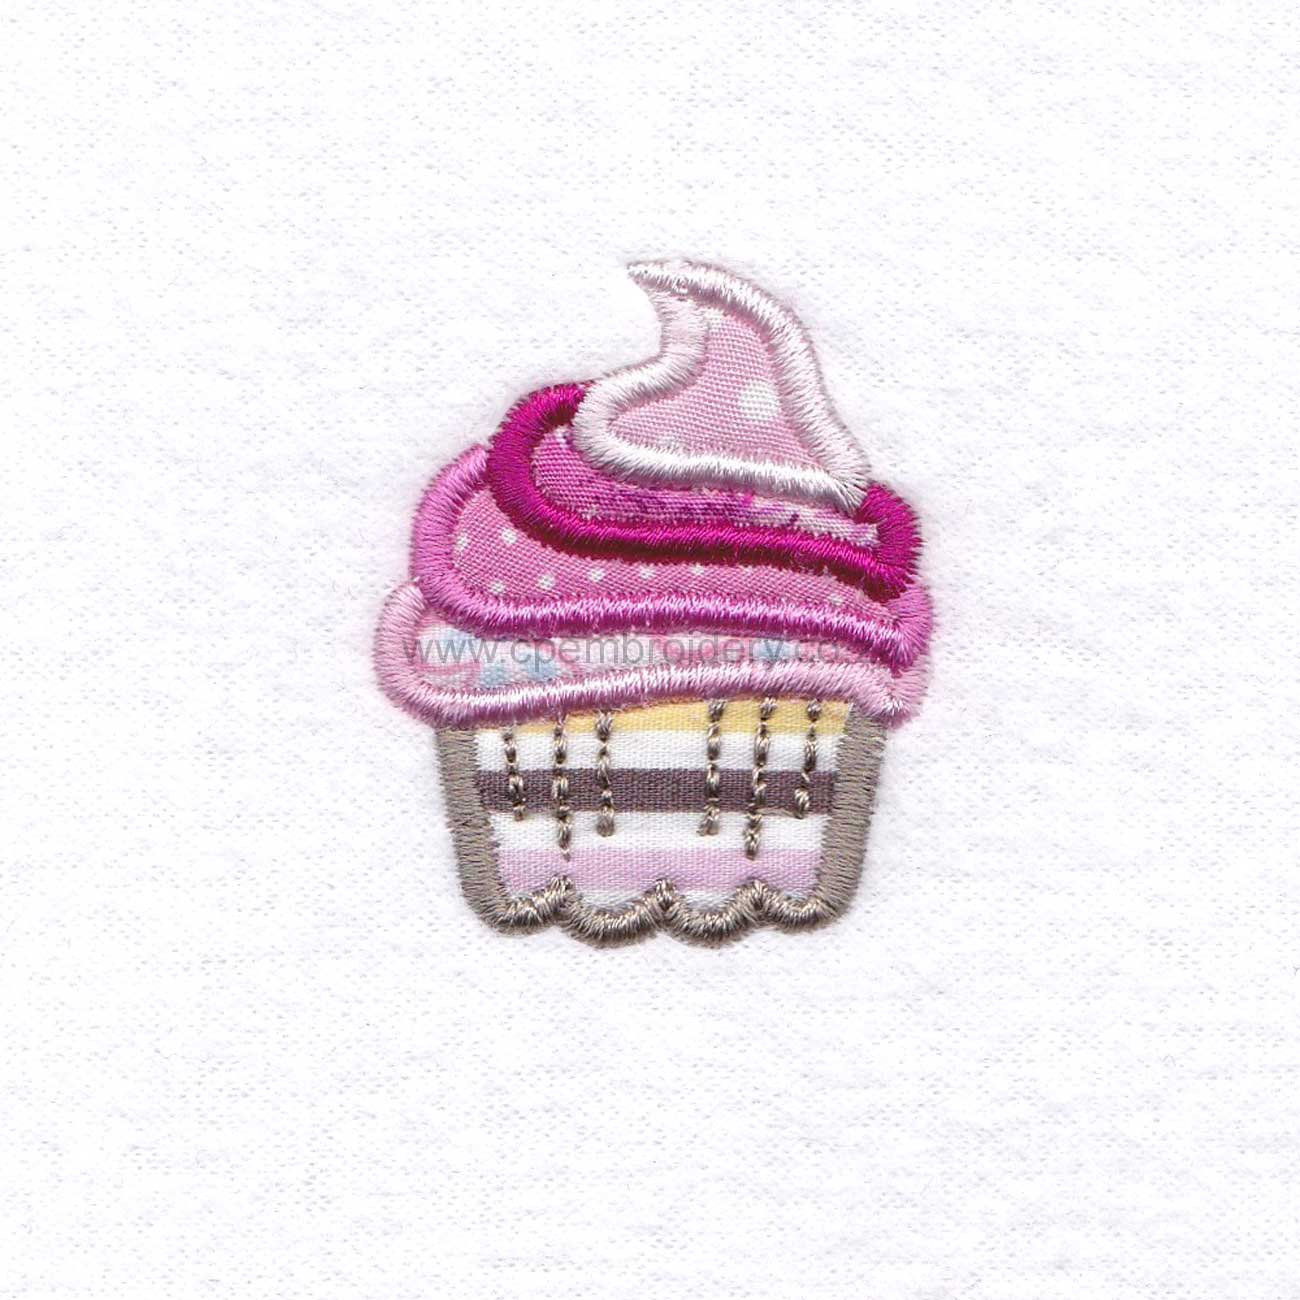 small cupcake cookie iced icing decorated swirl pink applique embroidery design